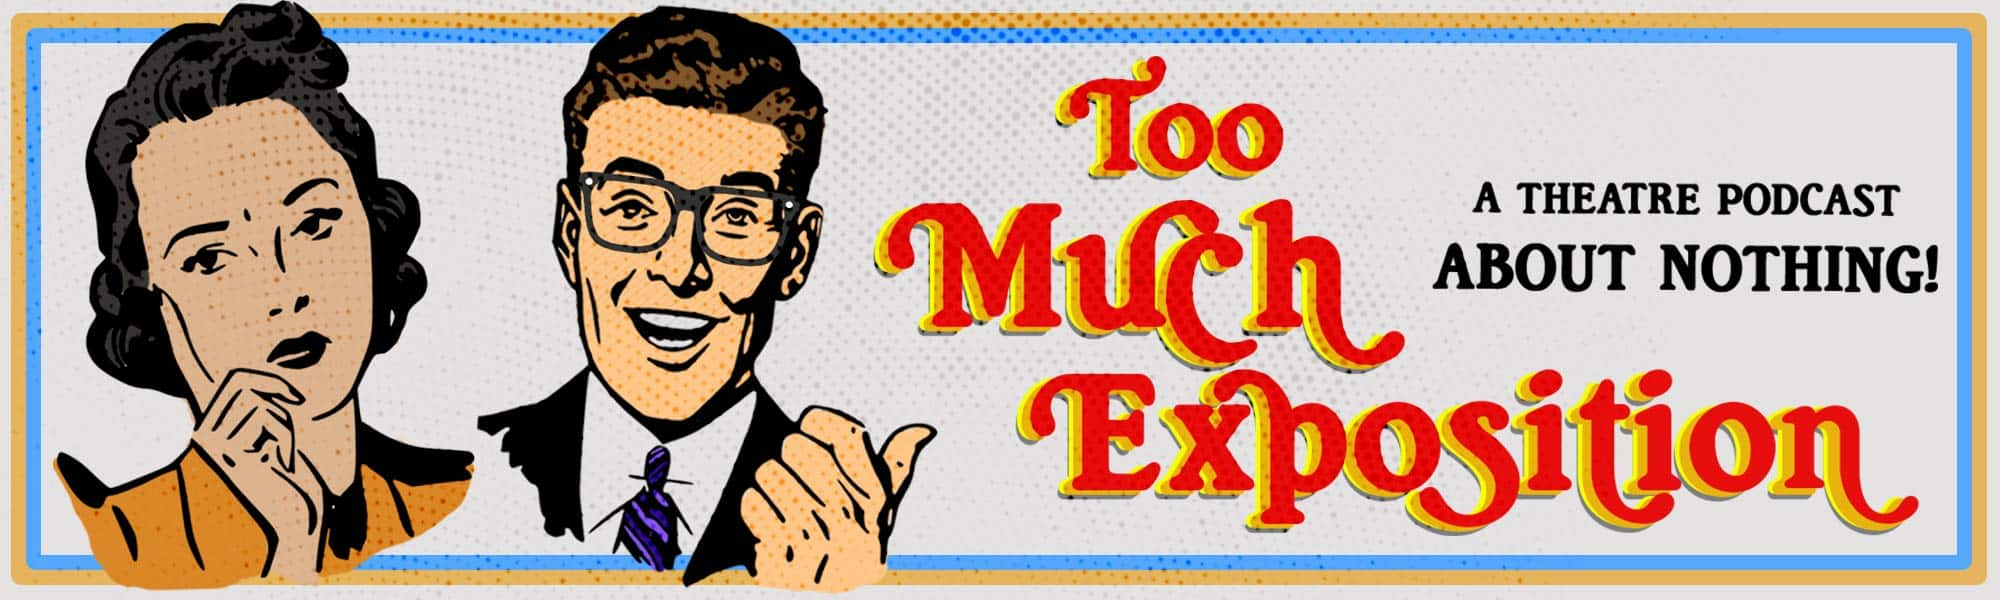 Too Much Exposition banner